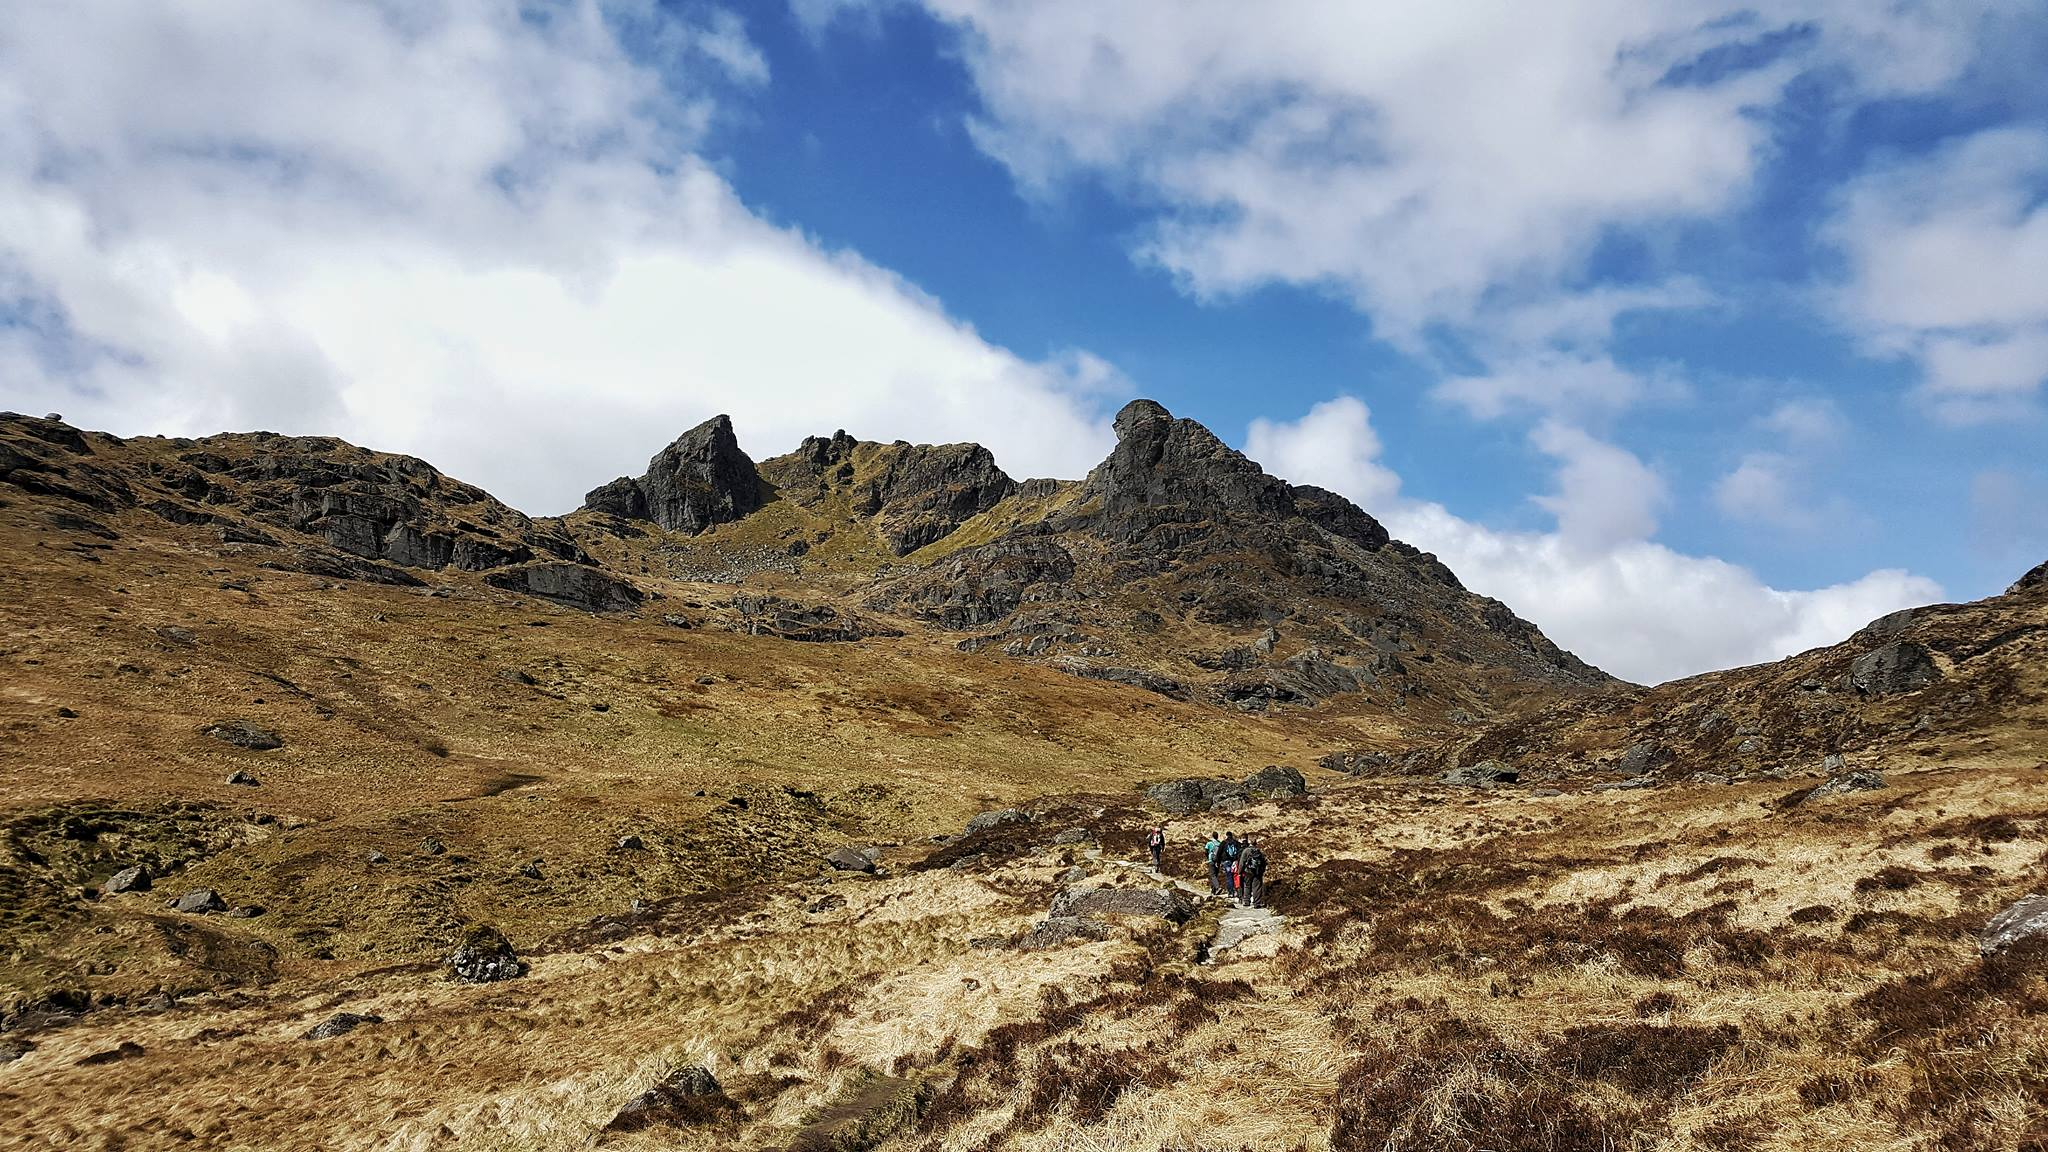 The Cobbler, one of Scotland's best known hills. Photo by Bianca Sala